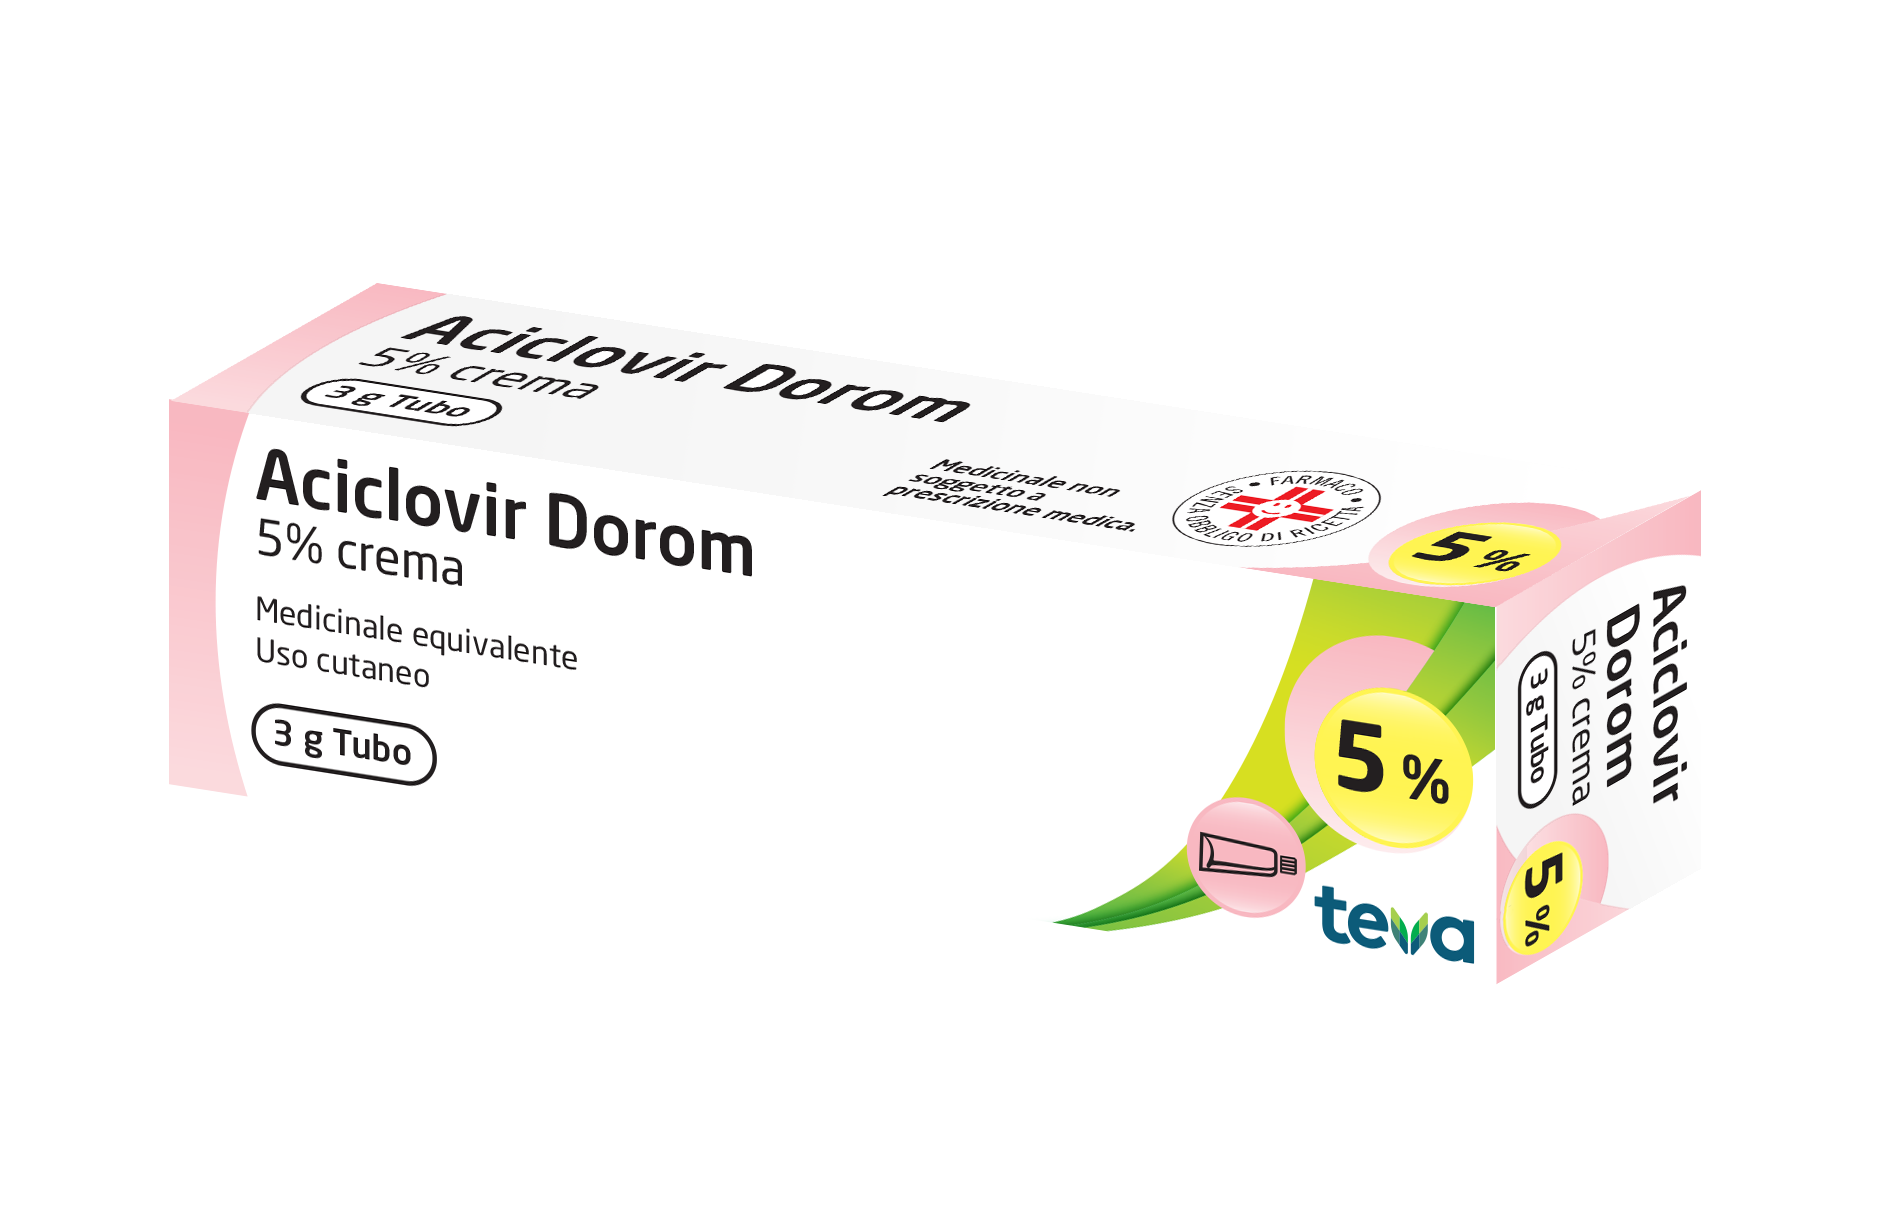 ACICLOVIR DOROM*CREMA 3G 5% - Spacefarma.it